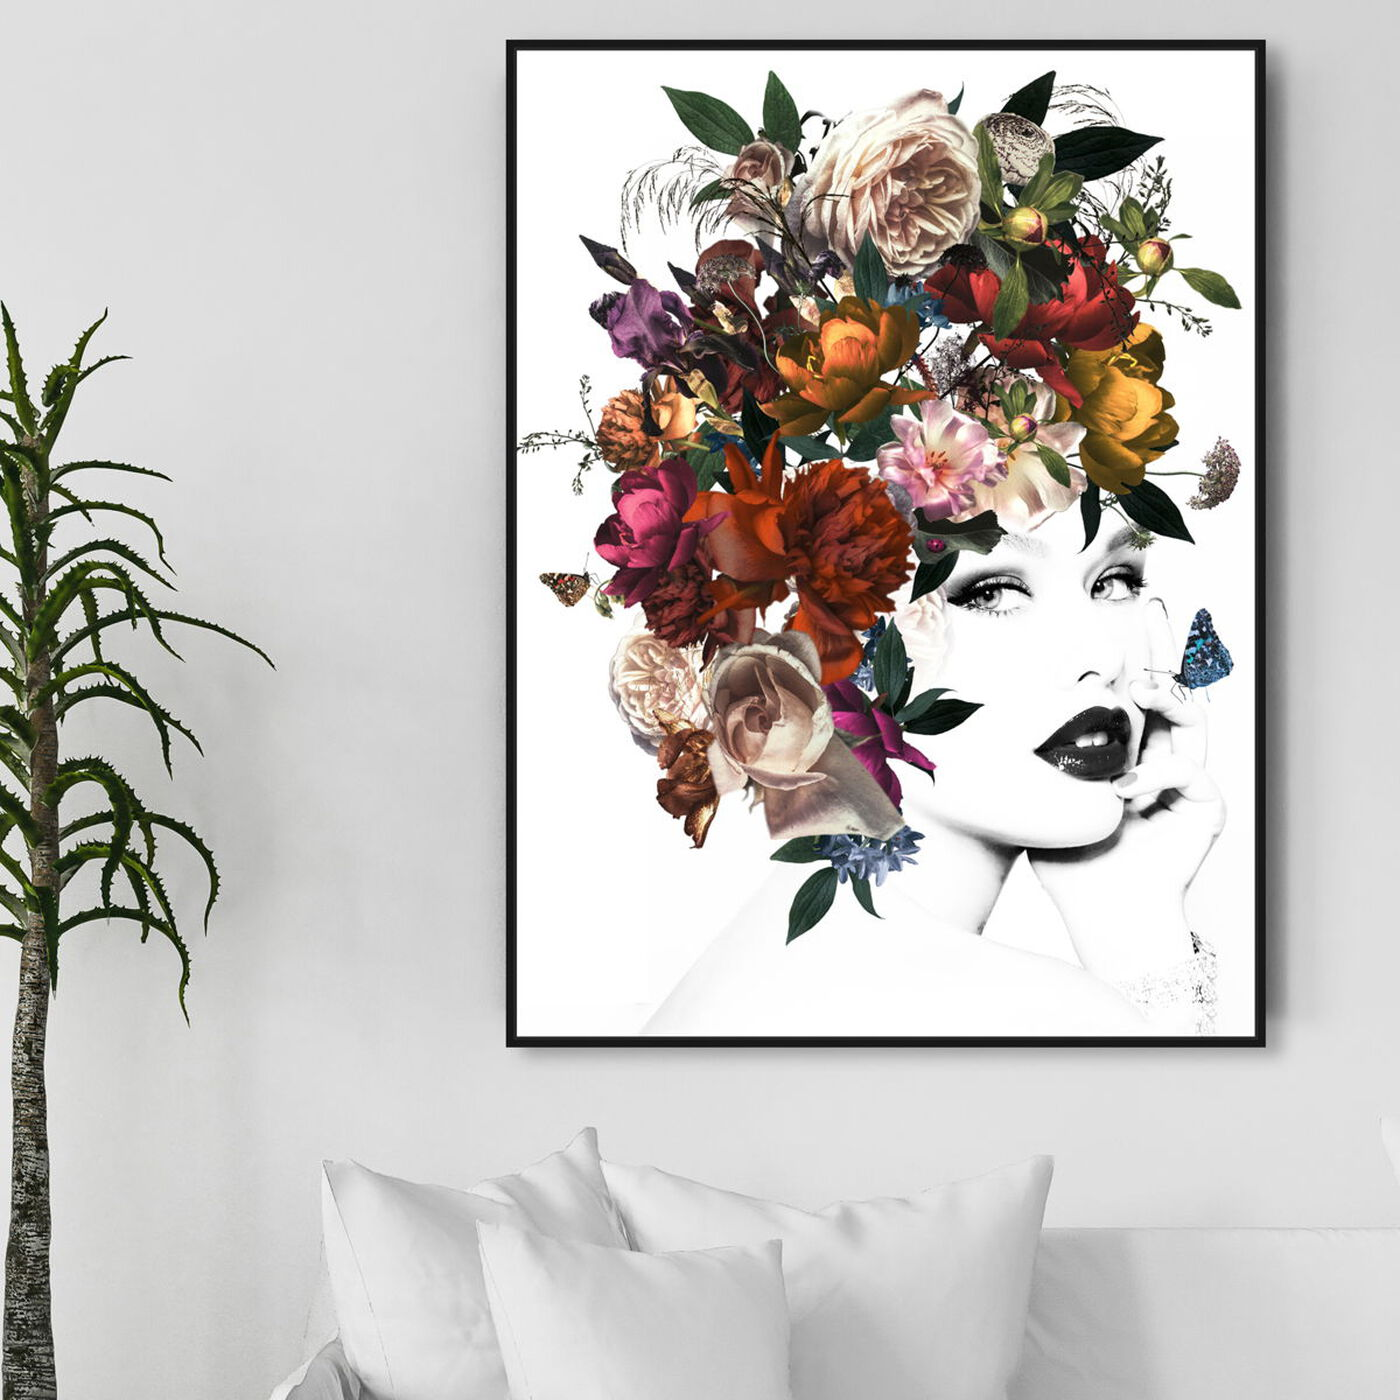 Hanging view of Queen Flora featuring fashion and glam and portraits art.